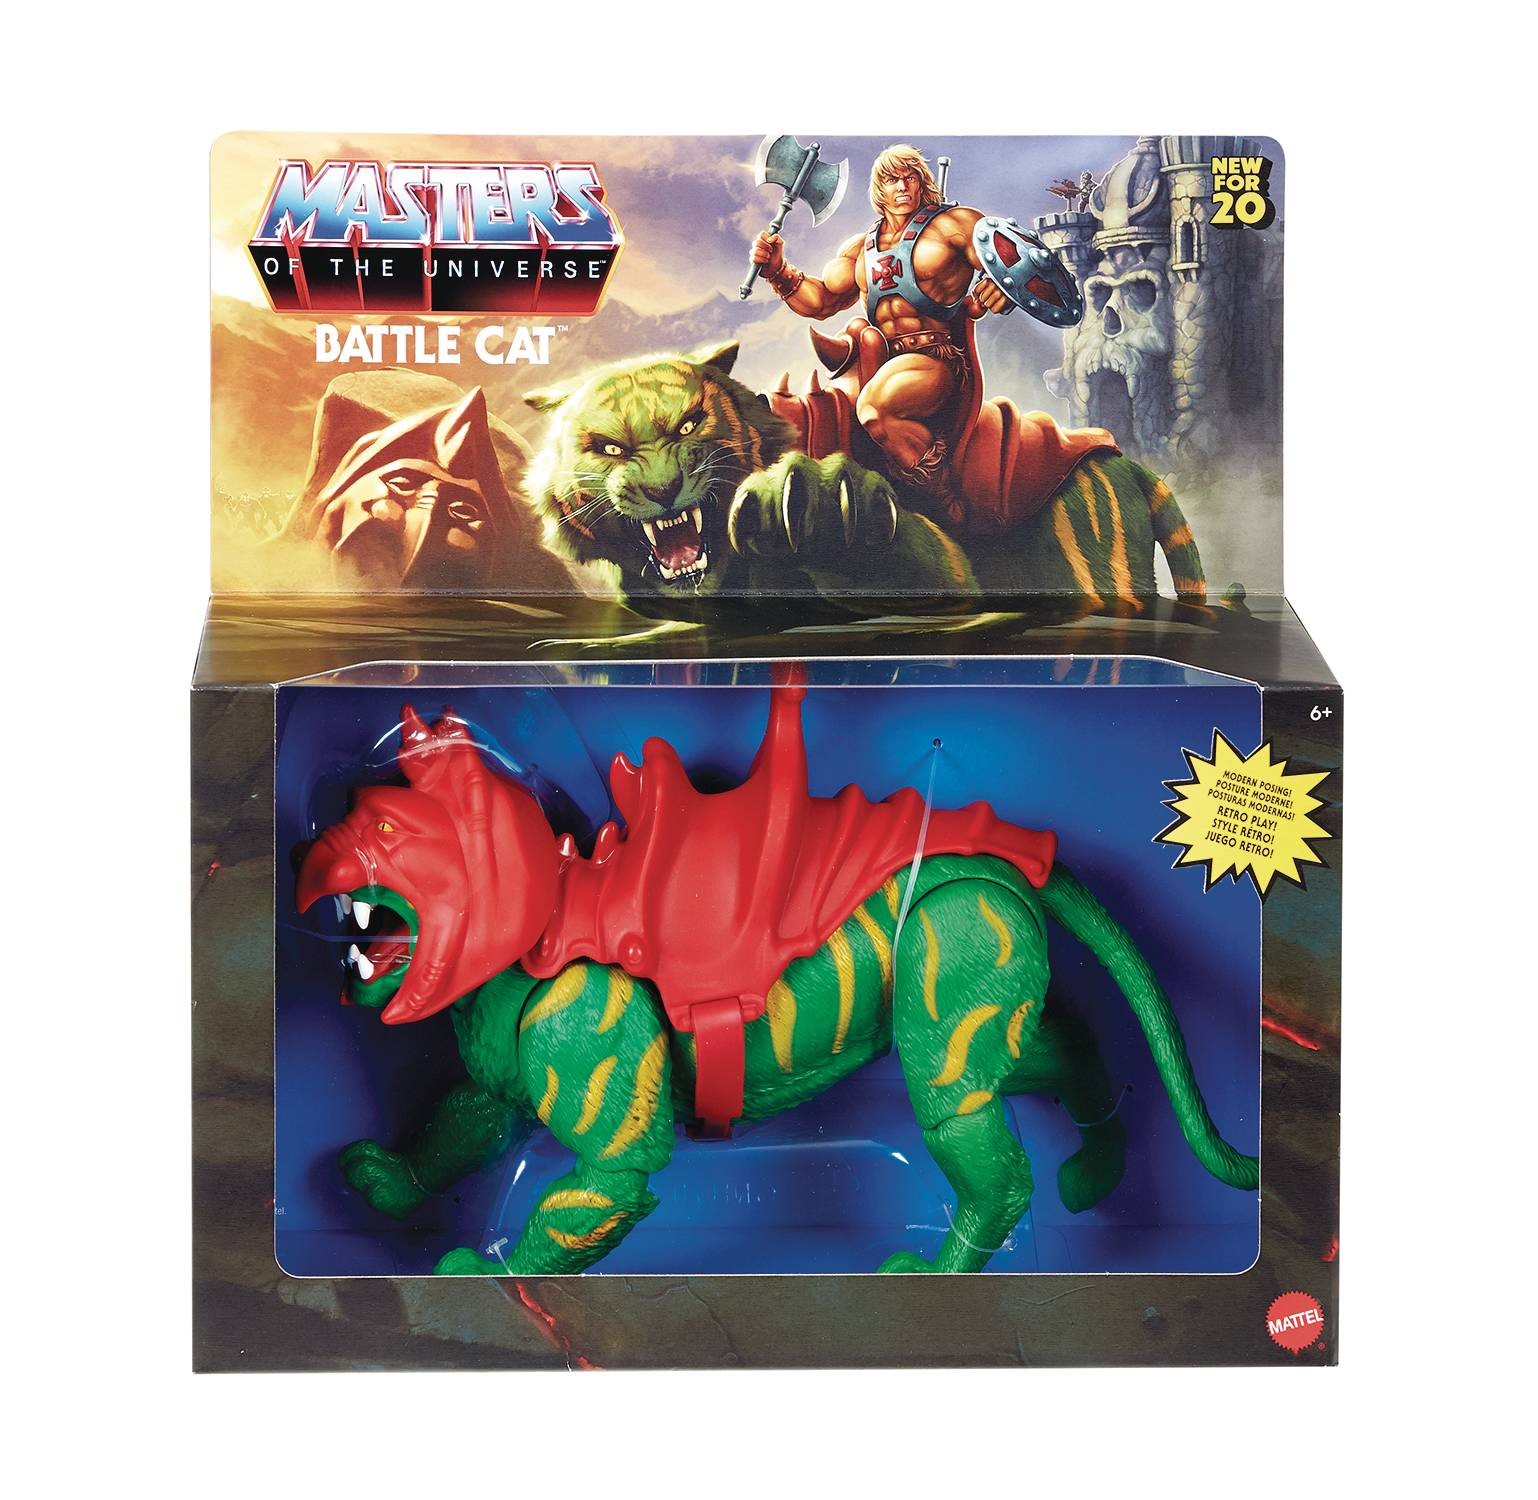 BATTLE CAT - MASTERS OF THE UNIVERSE ORIGINS ACTION FIGURE